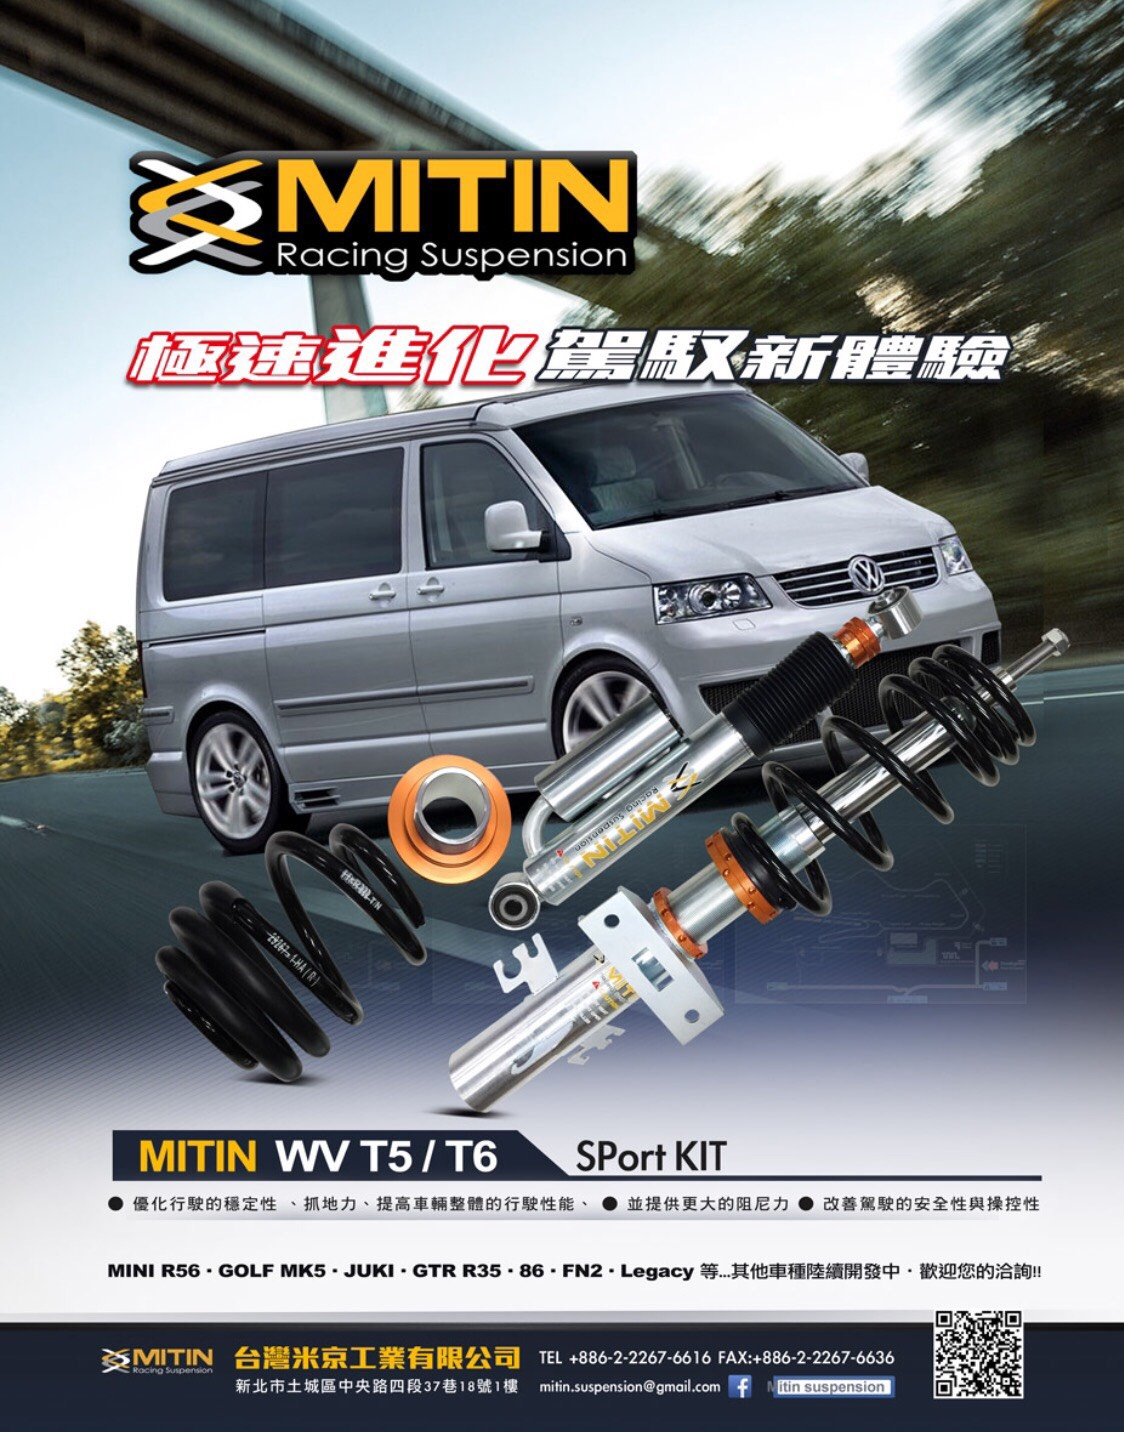 mitin-suspension__66969605